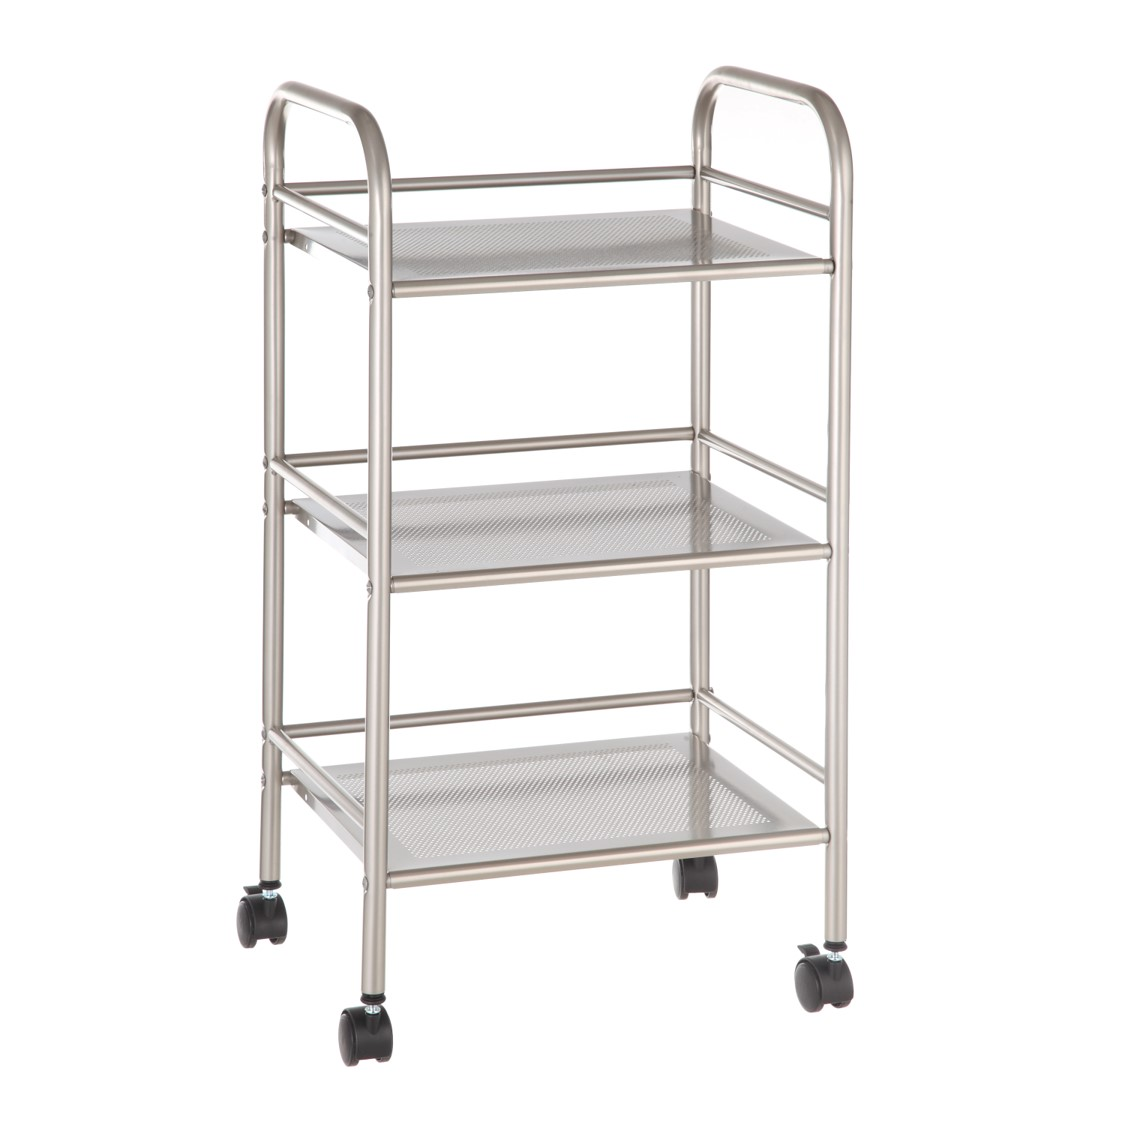 Mainstays Rolling Cart in Satin Nickel Finish - CAI0169G